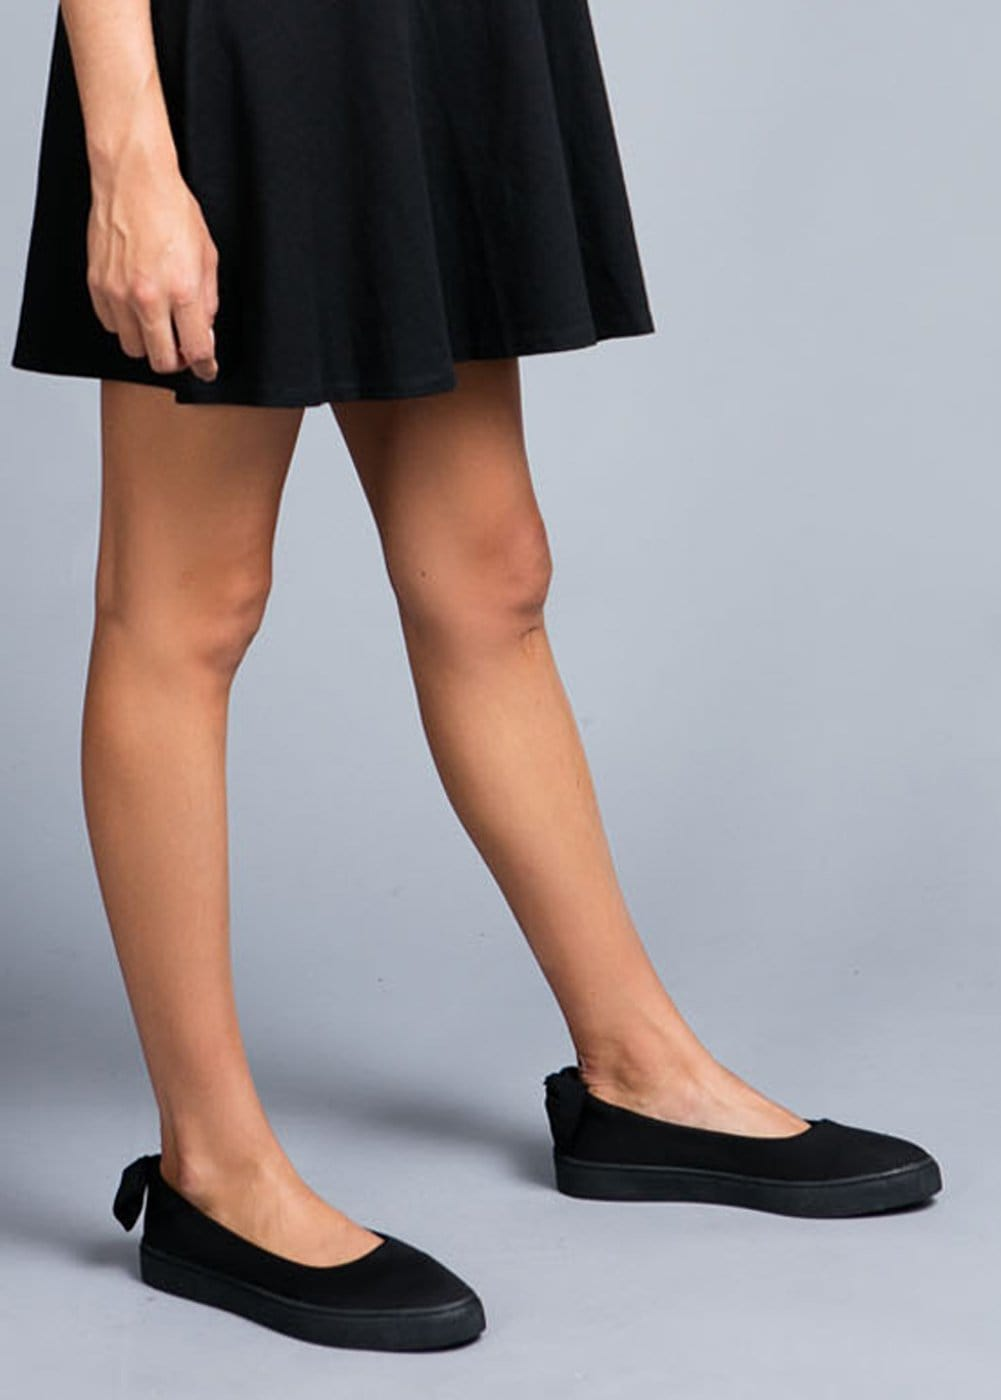 Girls Black Slip-On Shoes - Model Side